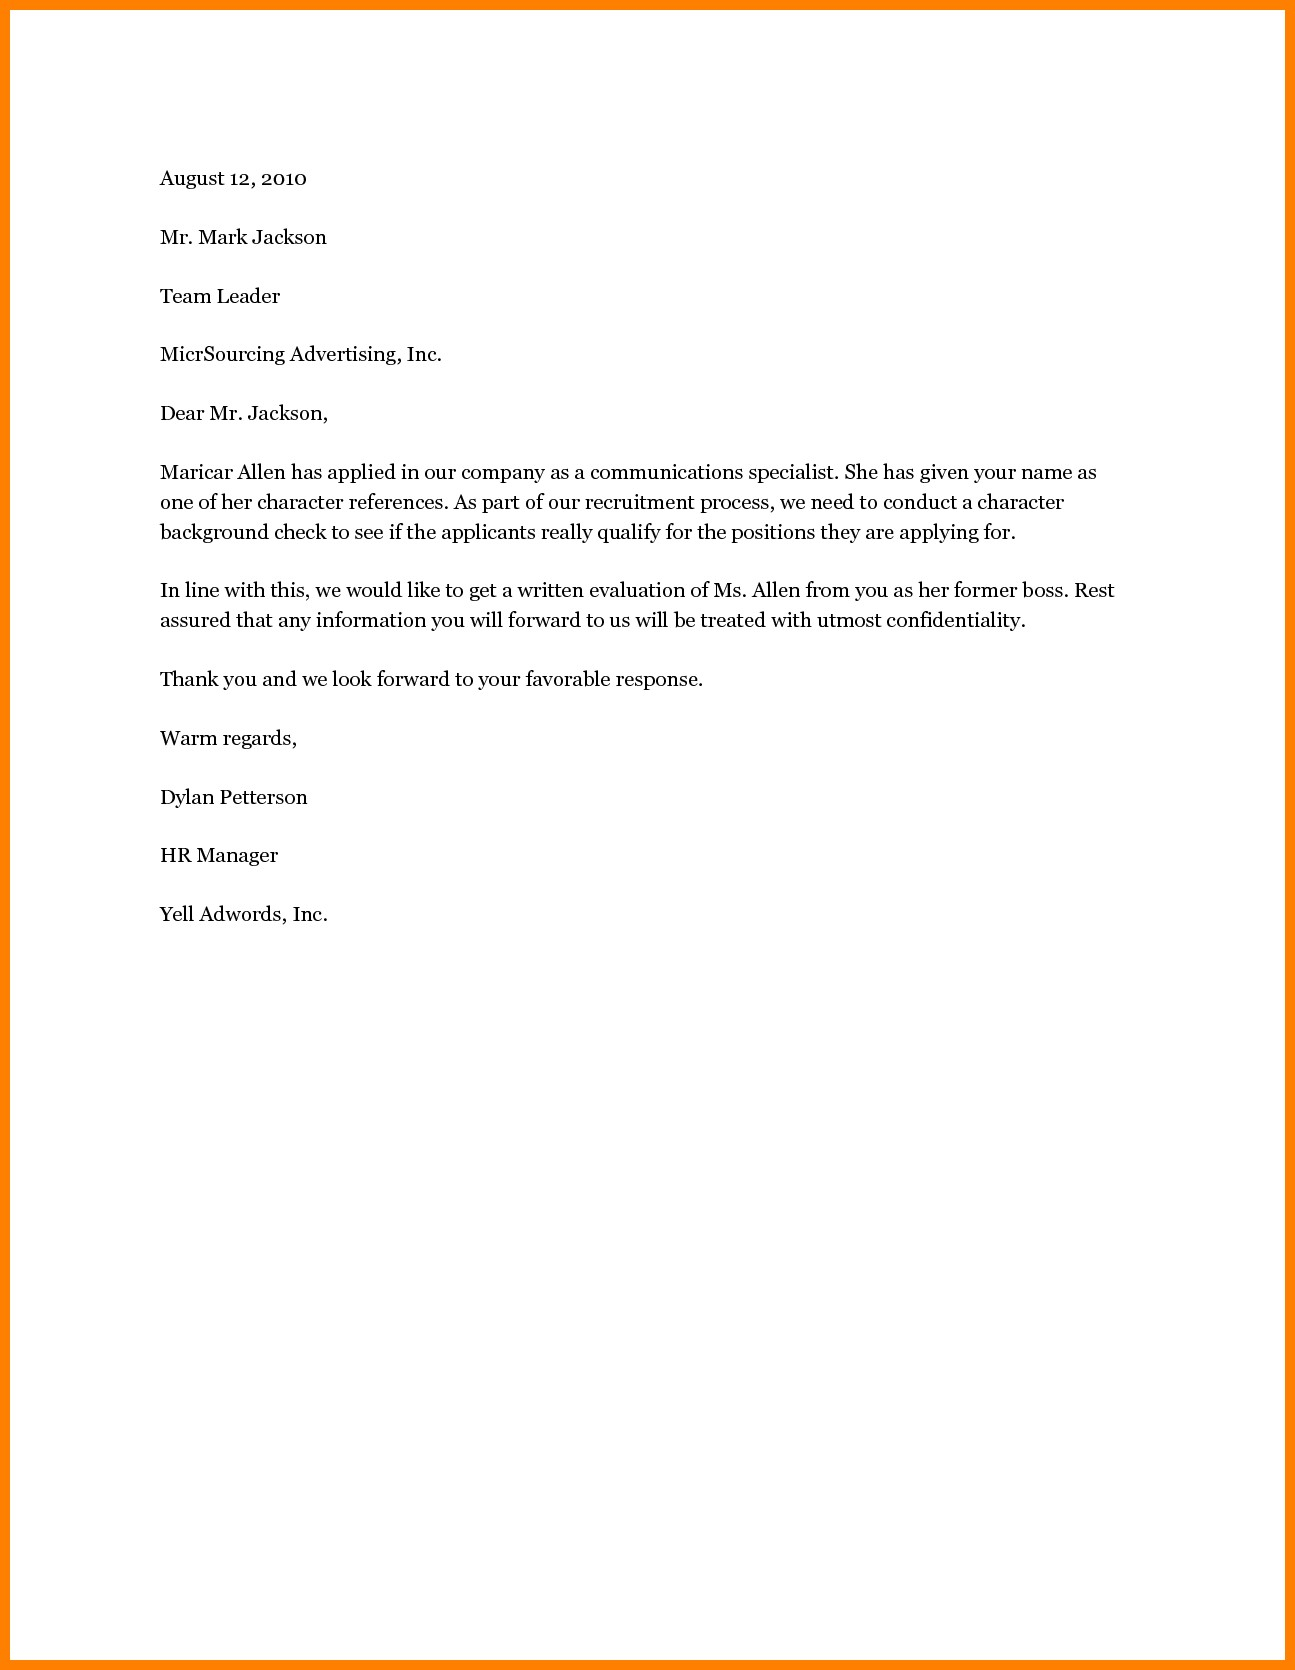 Free Character Reference Letter Template - Samples Certificate Good Moral Character Fresh 6 Good Moral